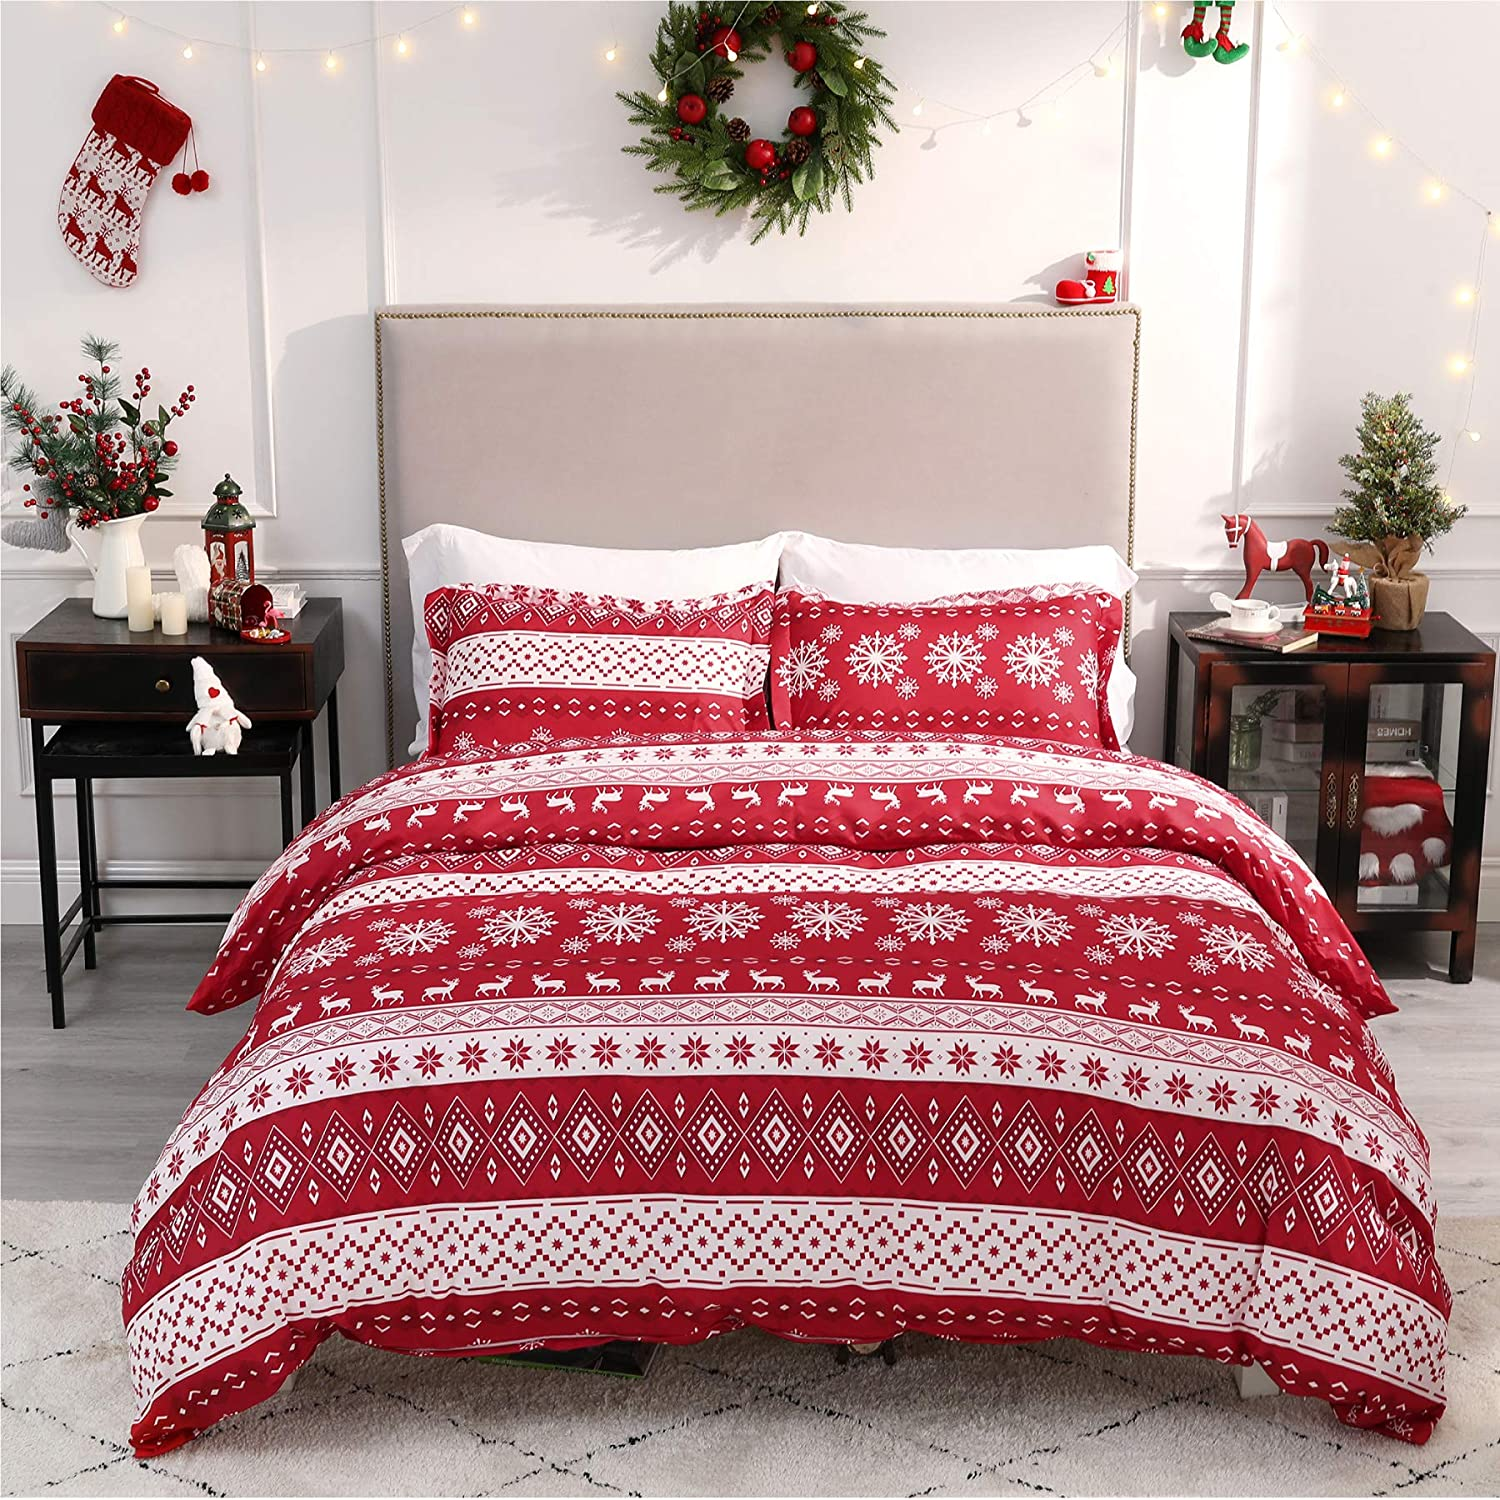 Bedsure Christmas Duvet Cover Set, Queen Christmas Bedding - Festive Printed Pattern - Soft Microfiber Comforter Cover, 3 Pieces Bedding with 1 Duvet Cover.